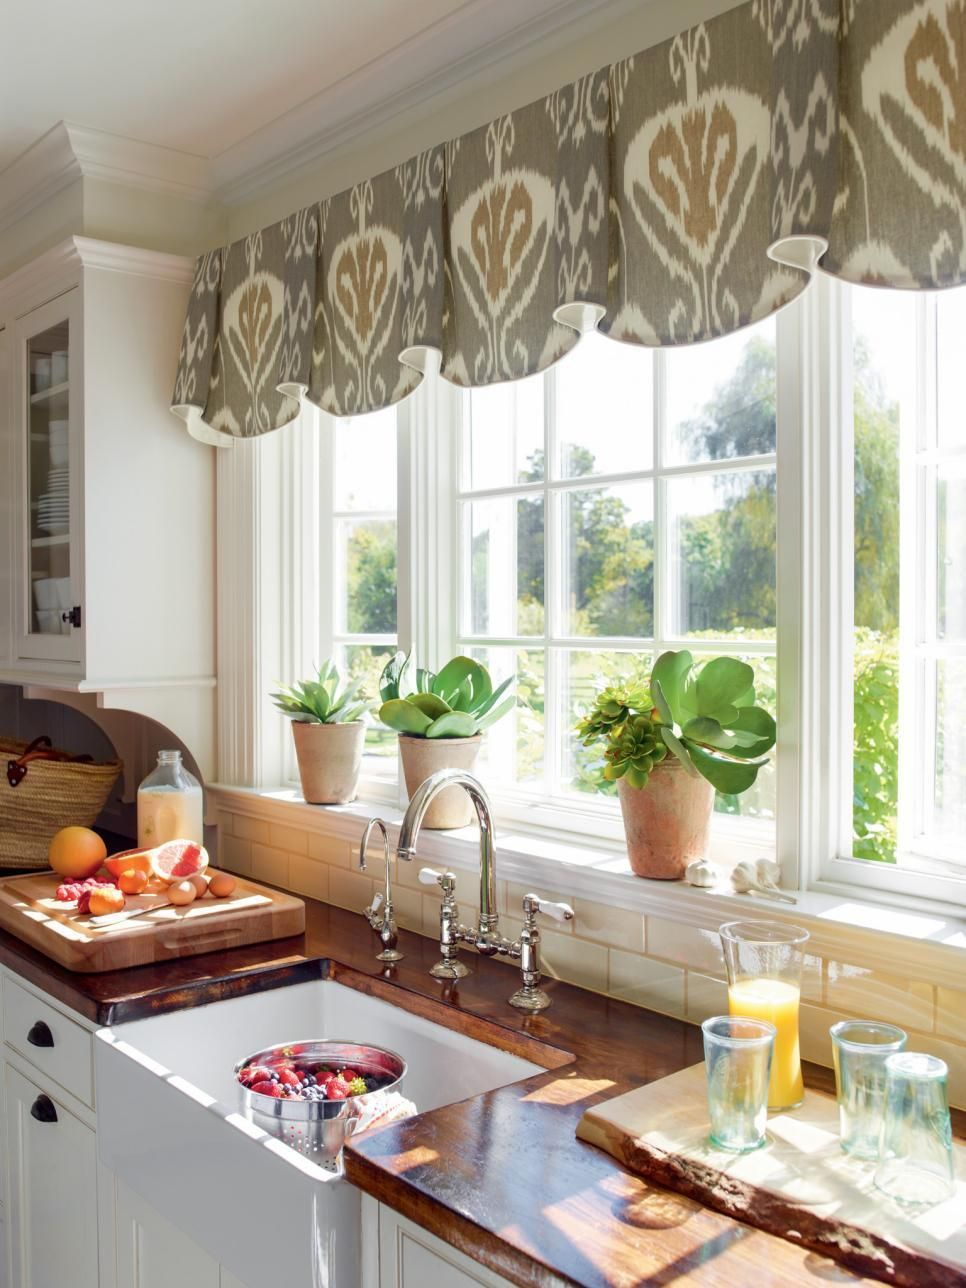 Window covering ideas   bathroom tile ideas  large window treatments rustic window